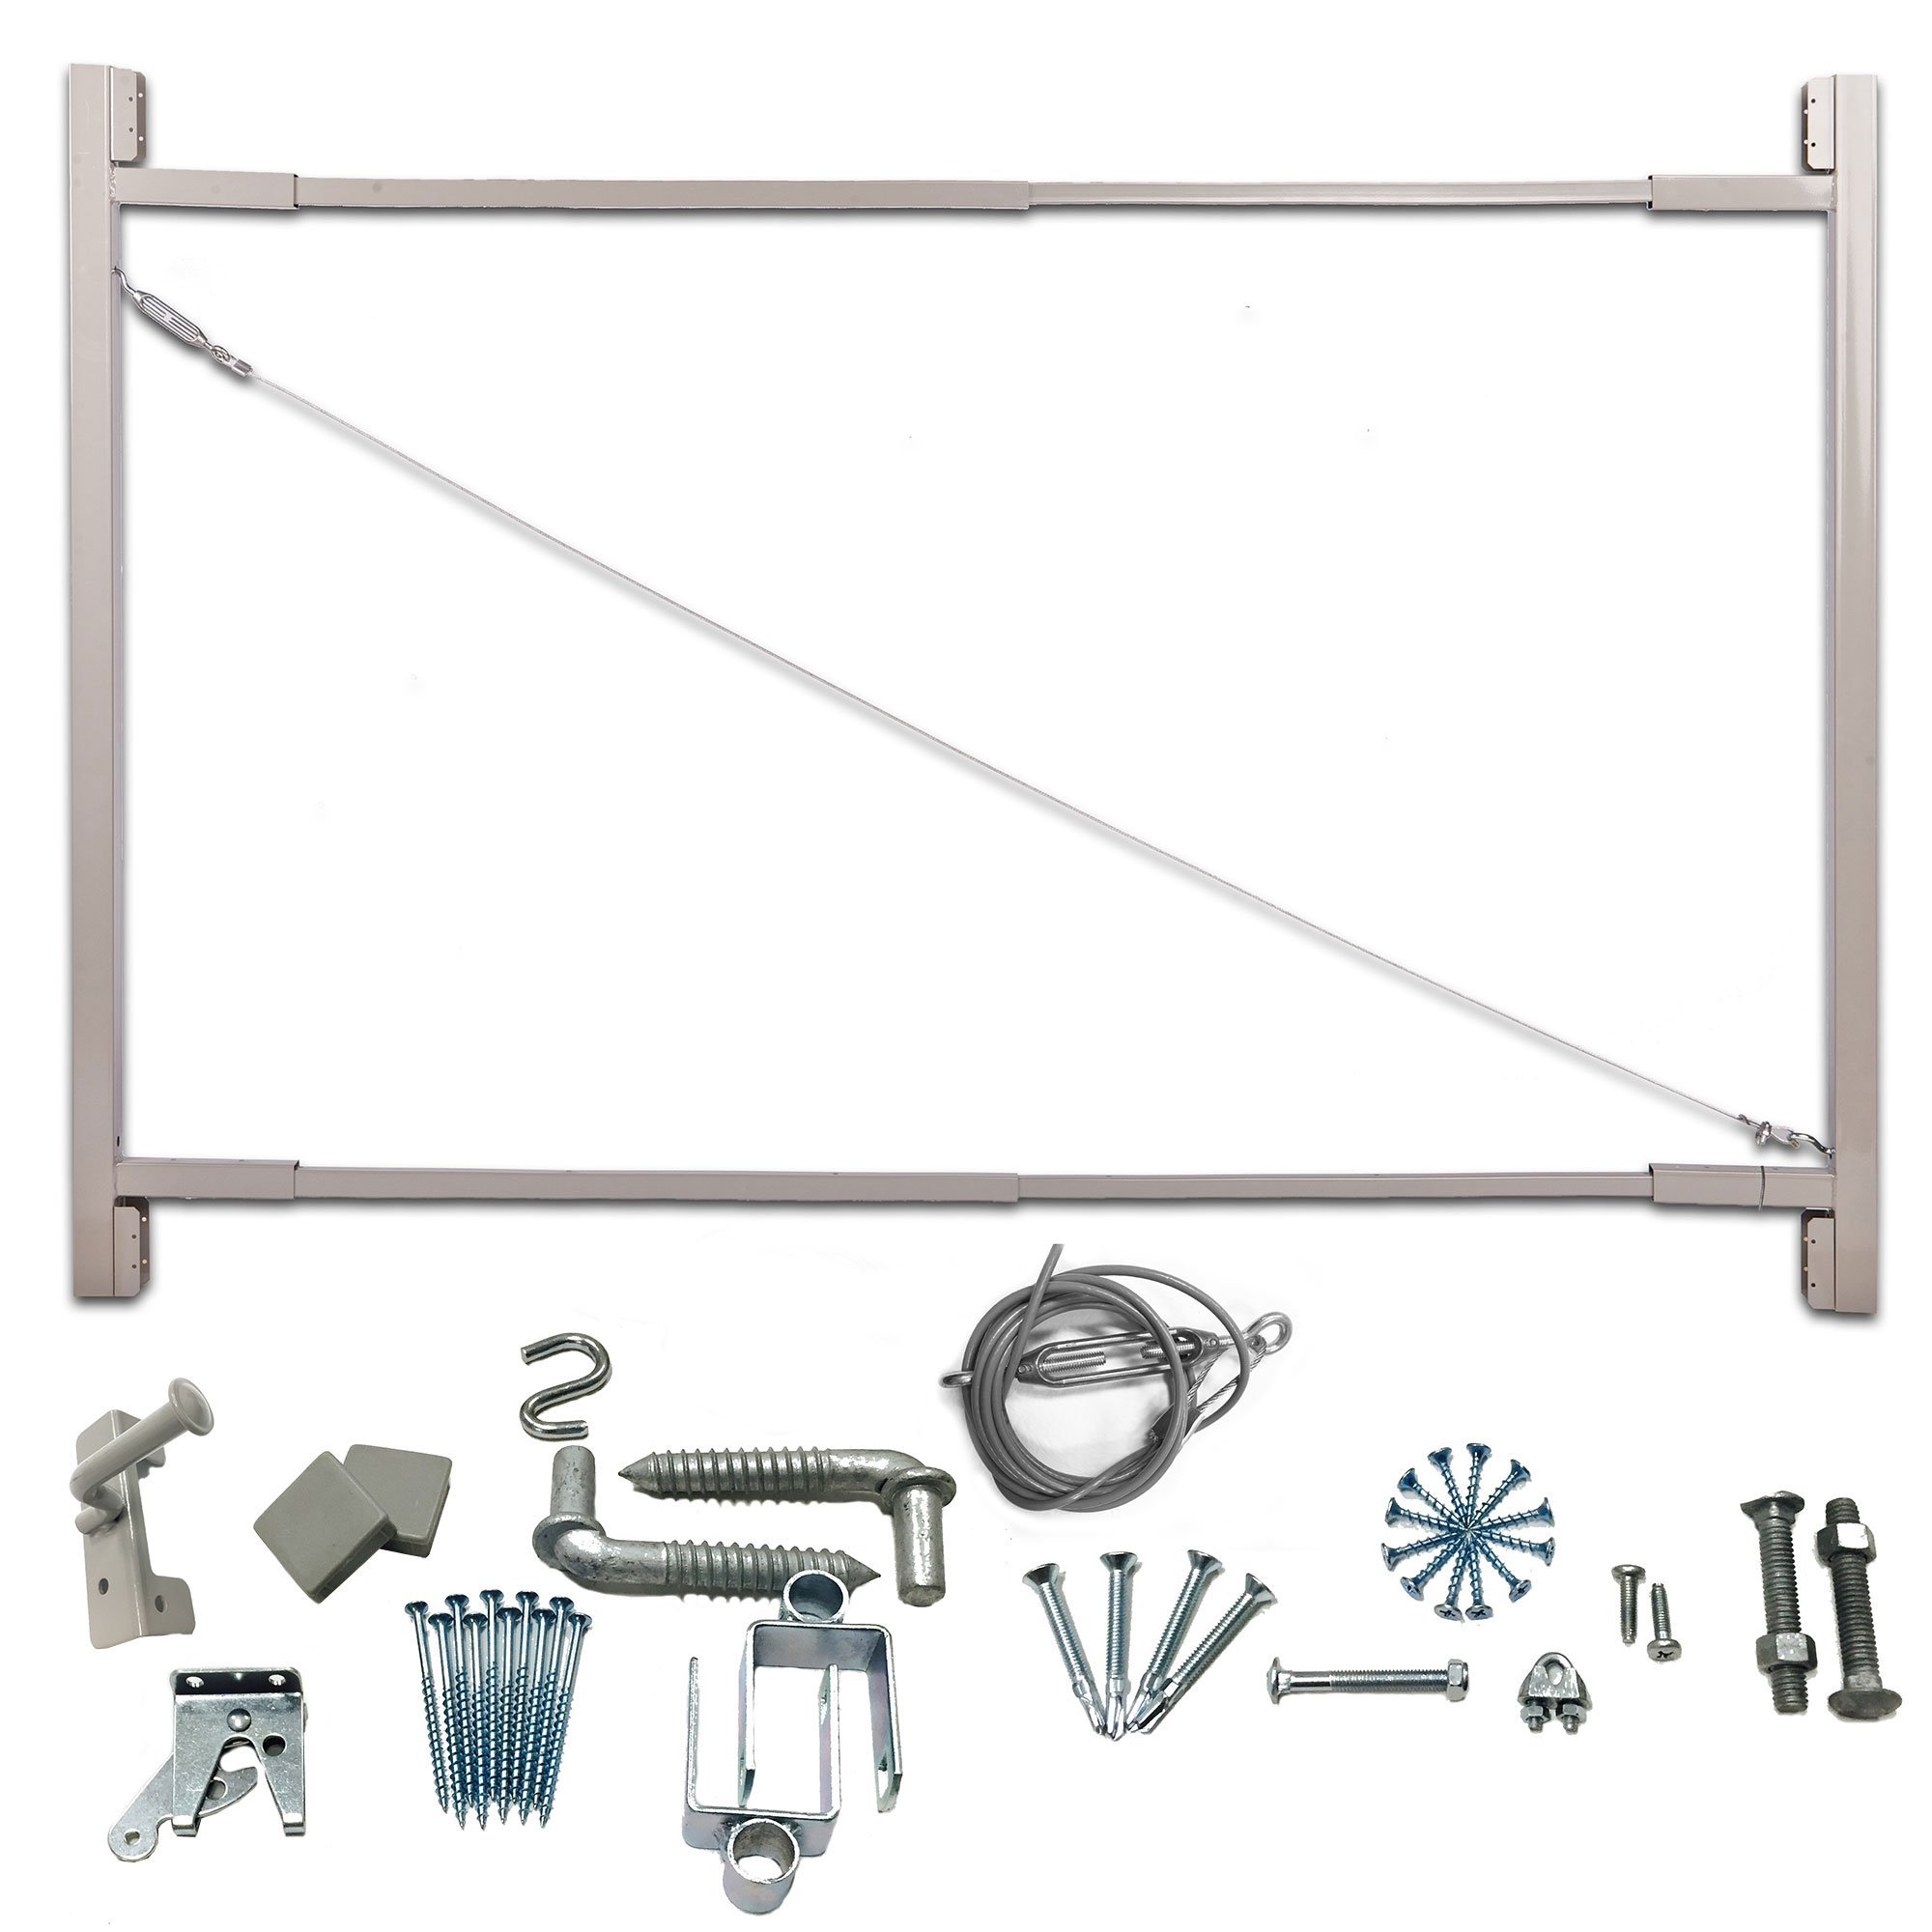 Adjust-A-Gate Gate Building Kit, 36''-72'' Wide Opening up to 6' High (3 Pack) by Adjust-A-Gate (Image #2)